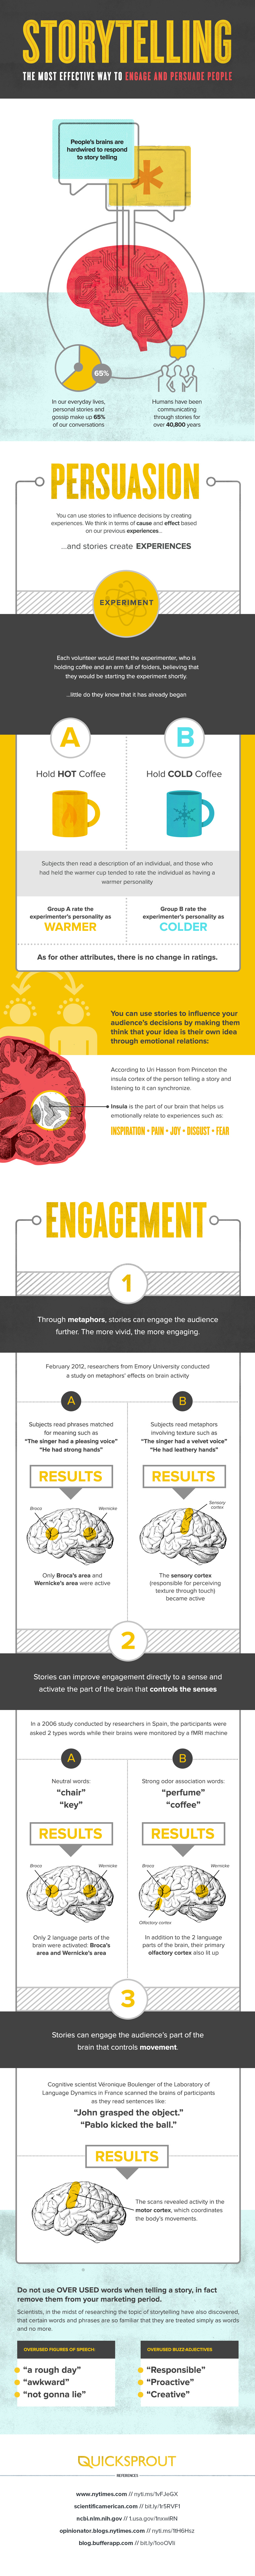 Storytelling: The Most Effective Way to Engage and Persuade People